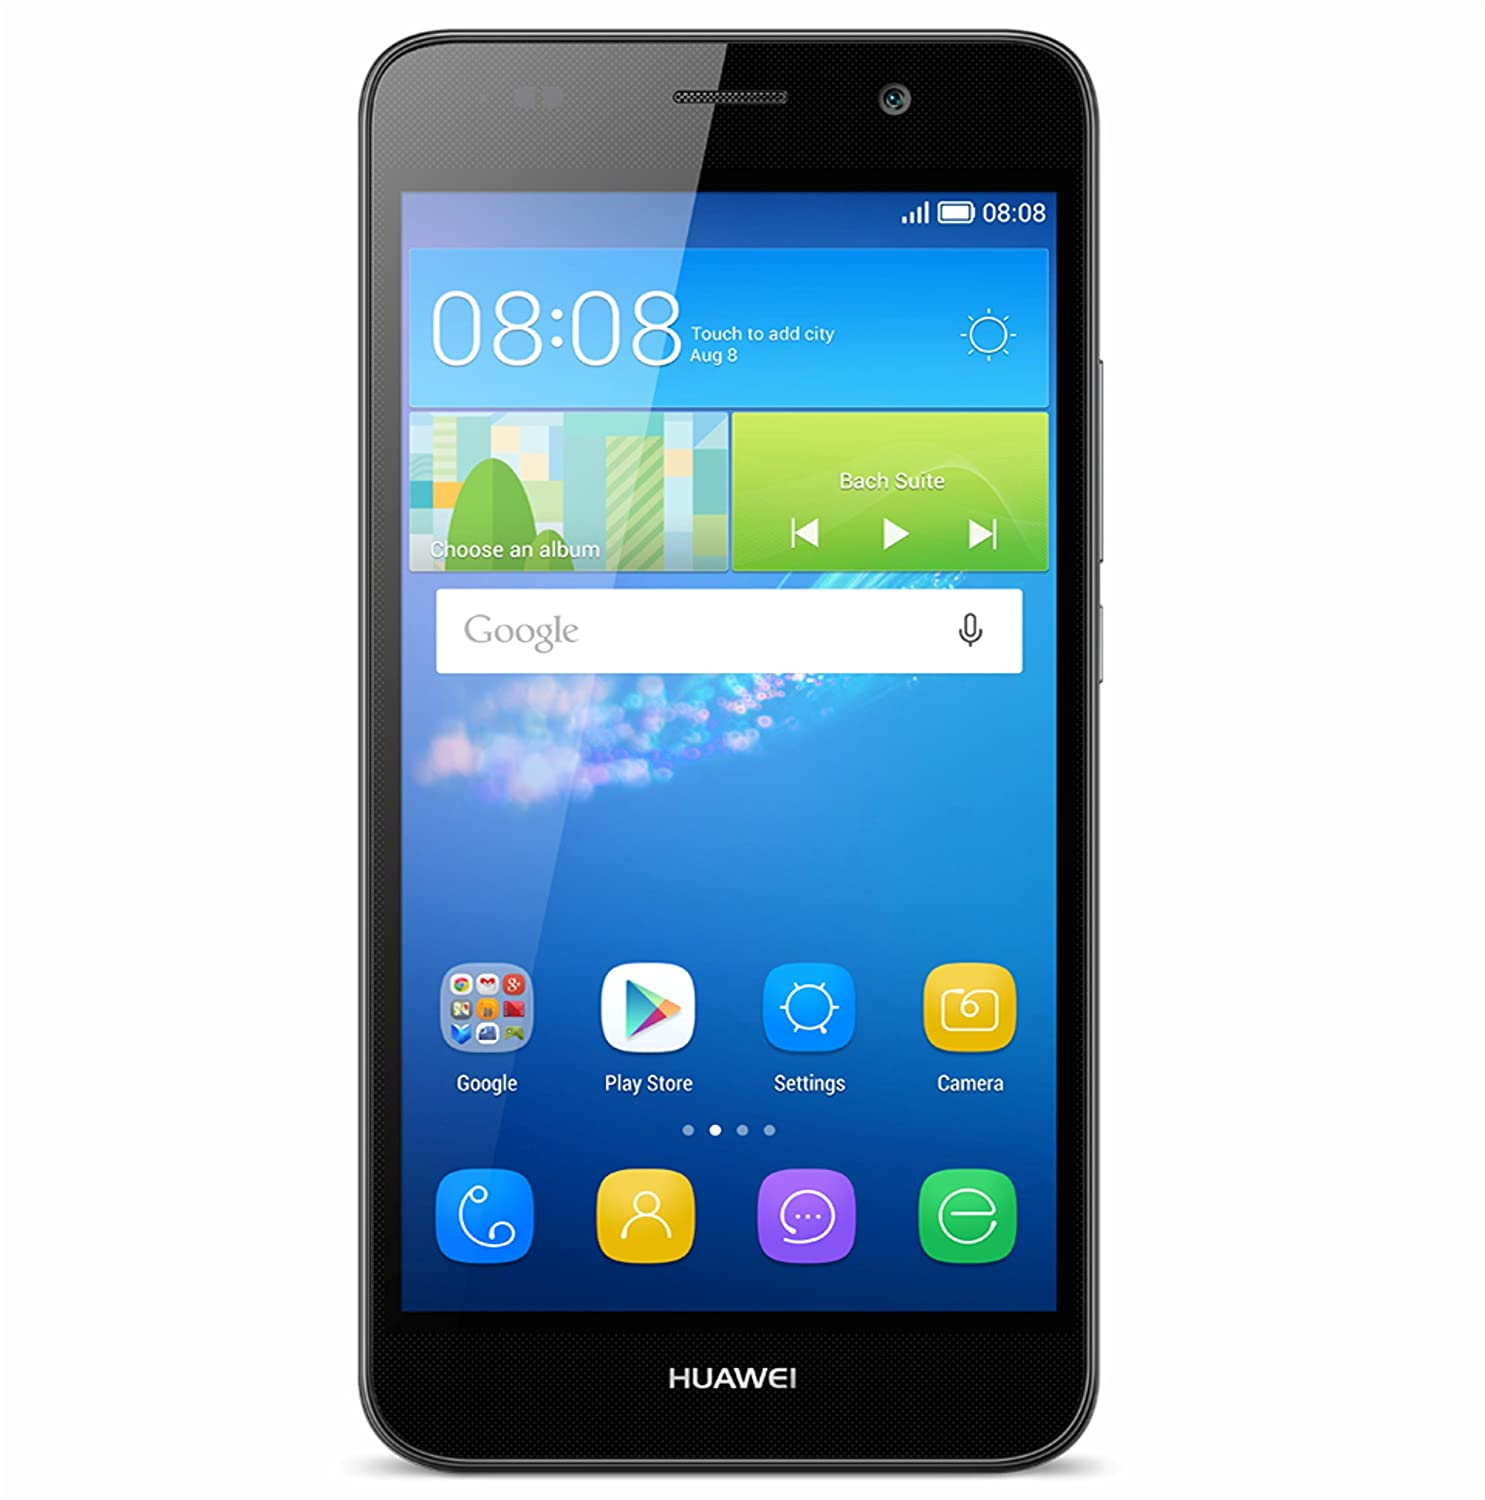 Camera Android Phones Pay As You Go ee kestrel android smartphone on pay as you go amazon co uk huawei y5 go